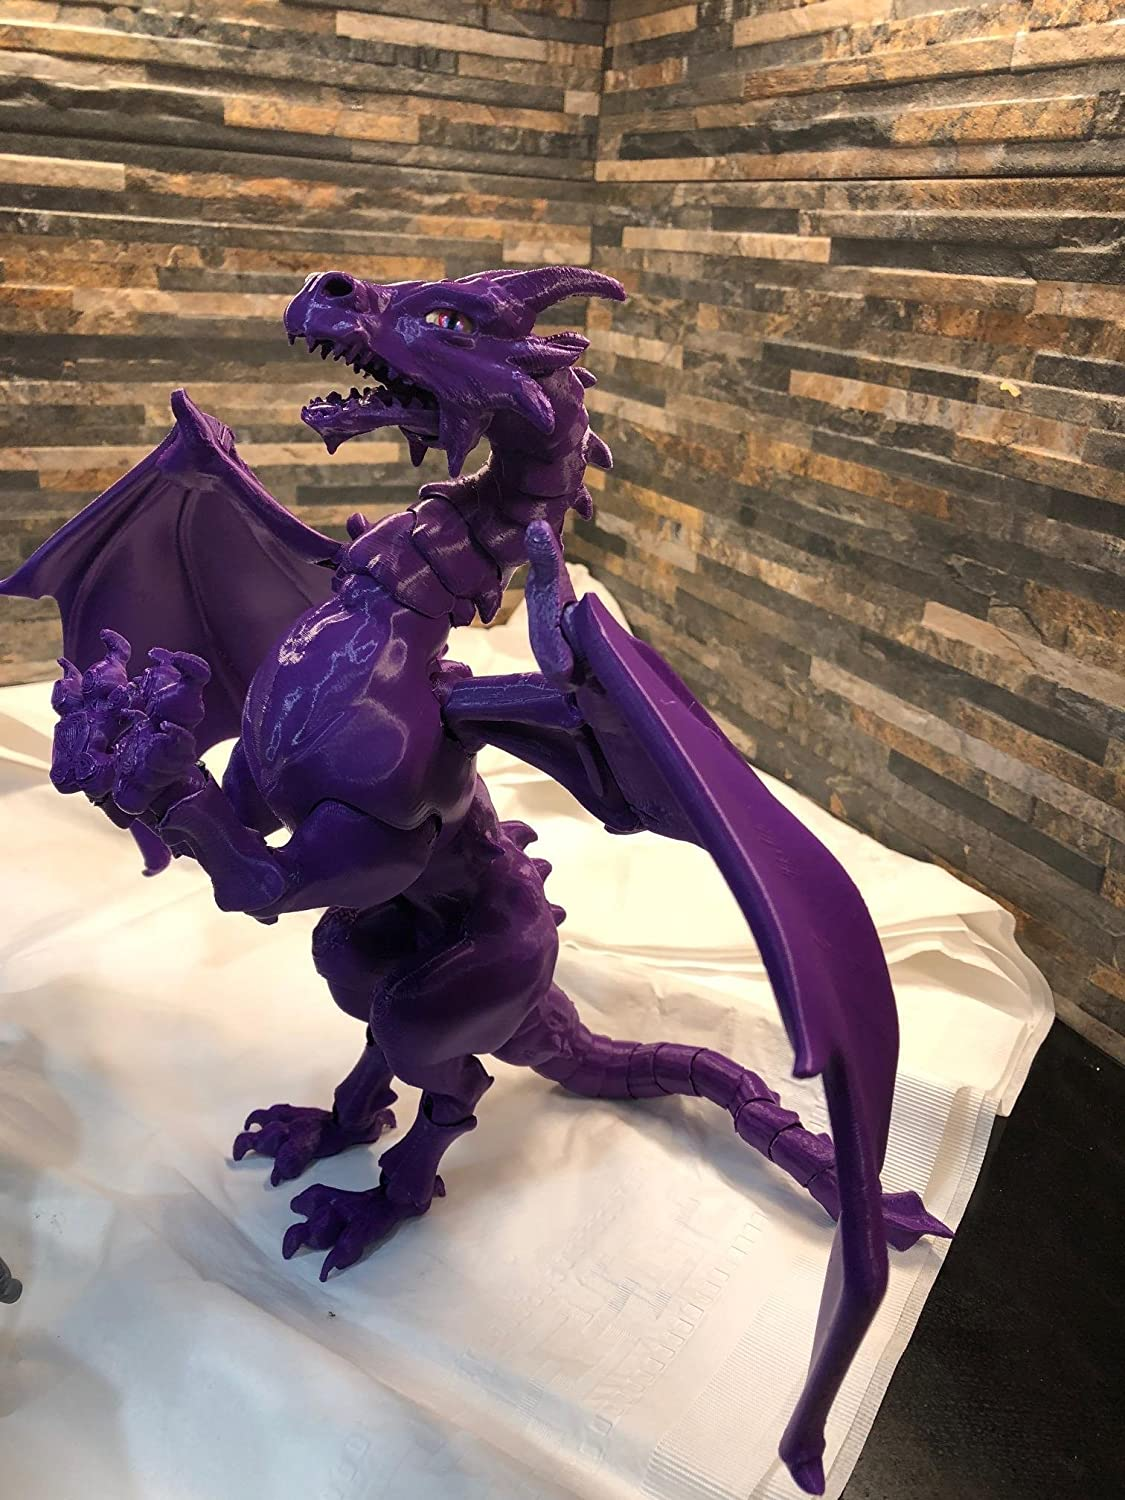 BJD Dragon Doll/Action Figure - Ball Jointed/ Articulated - 3D Printed, Assembled by Hand